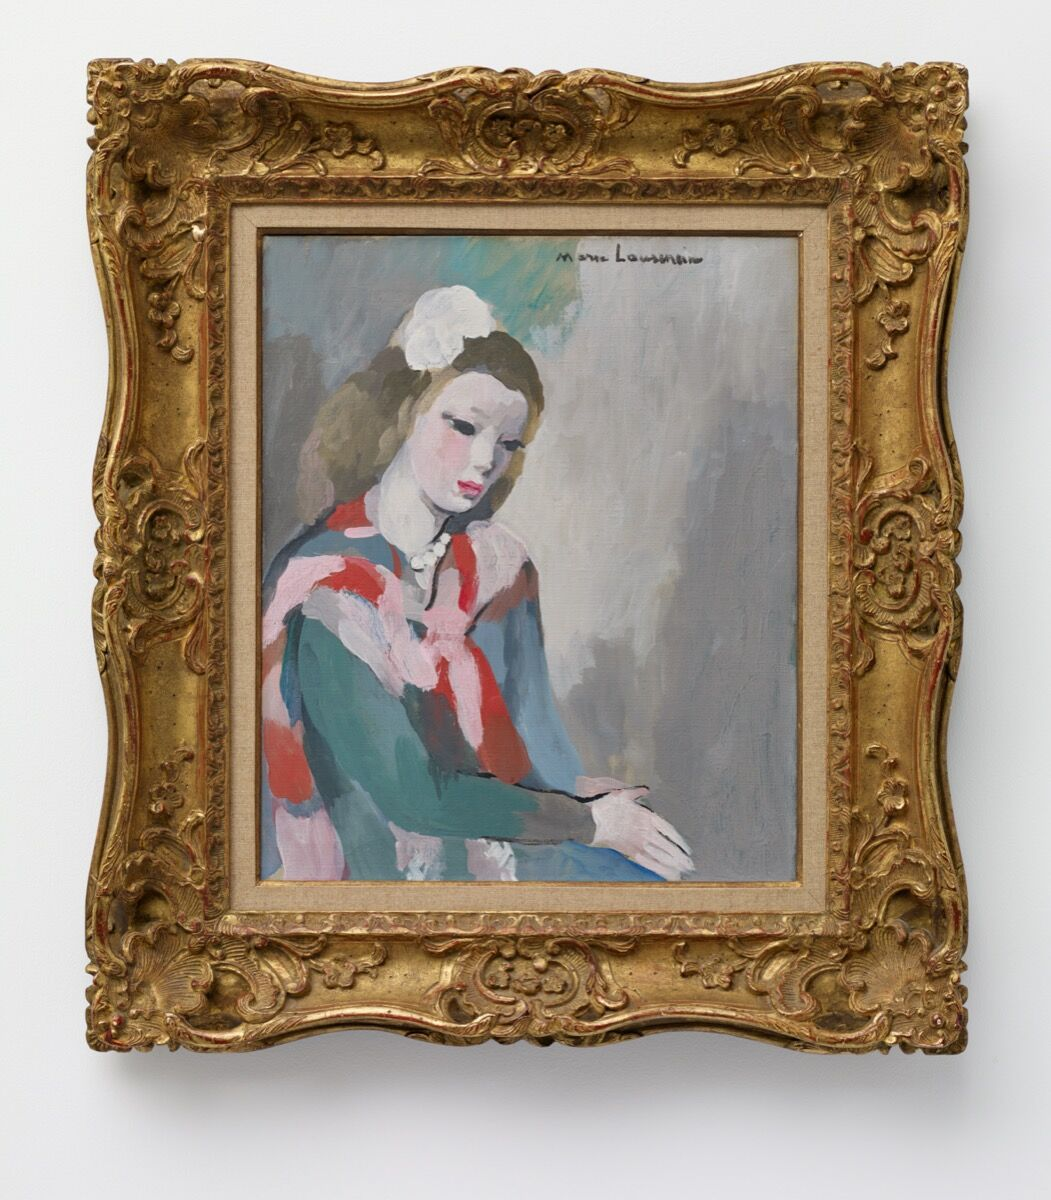 Marie Laurencin, Jeune femme aux perles, n.d. © 2020 Artists Rights Society (ARS), New York / ADAGP, Paris. Courtesy of Nahmad Projects.